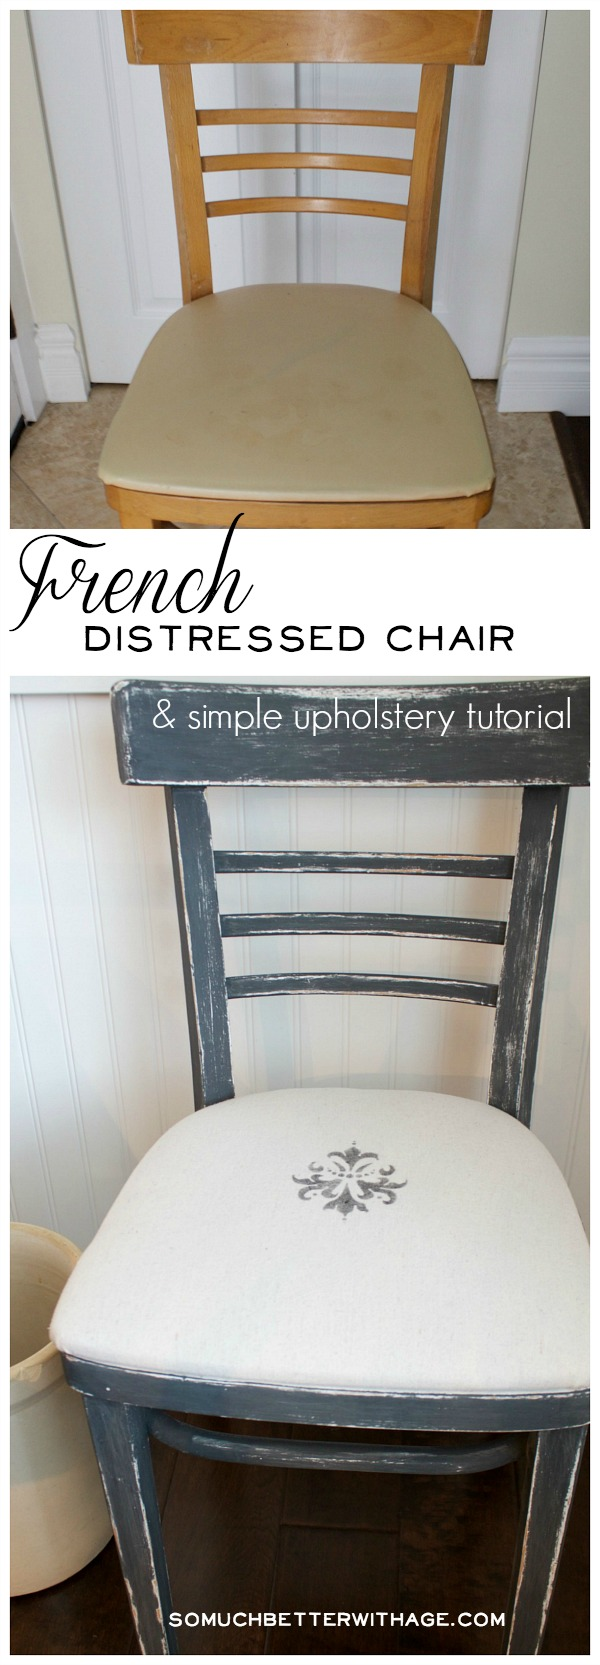 French distressed chair and simple upholstery tutorial